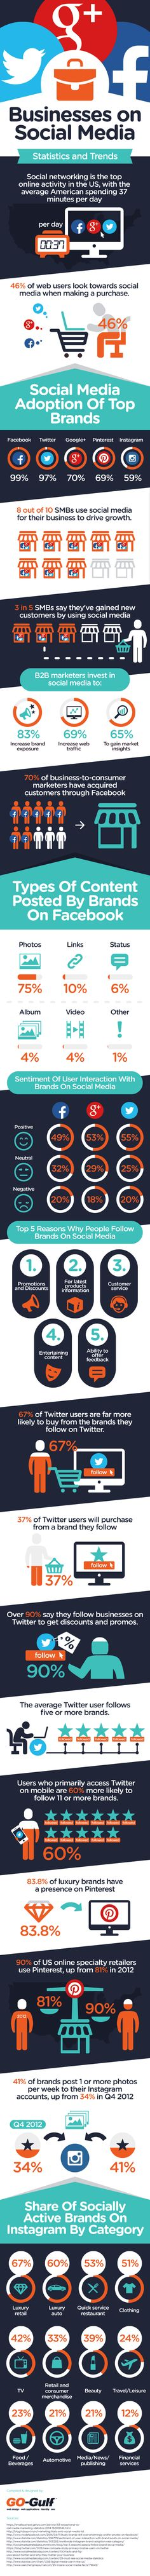 Businesses on Social Media: Statistics & Trends Infographic